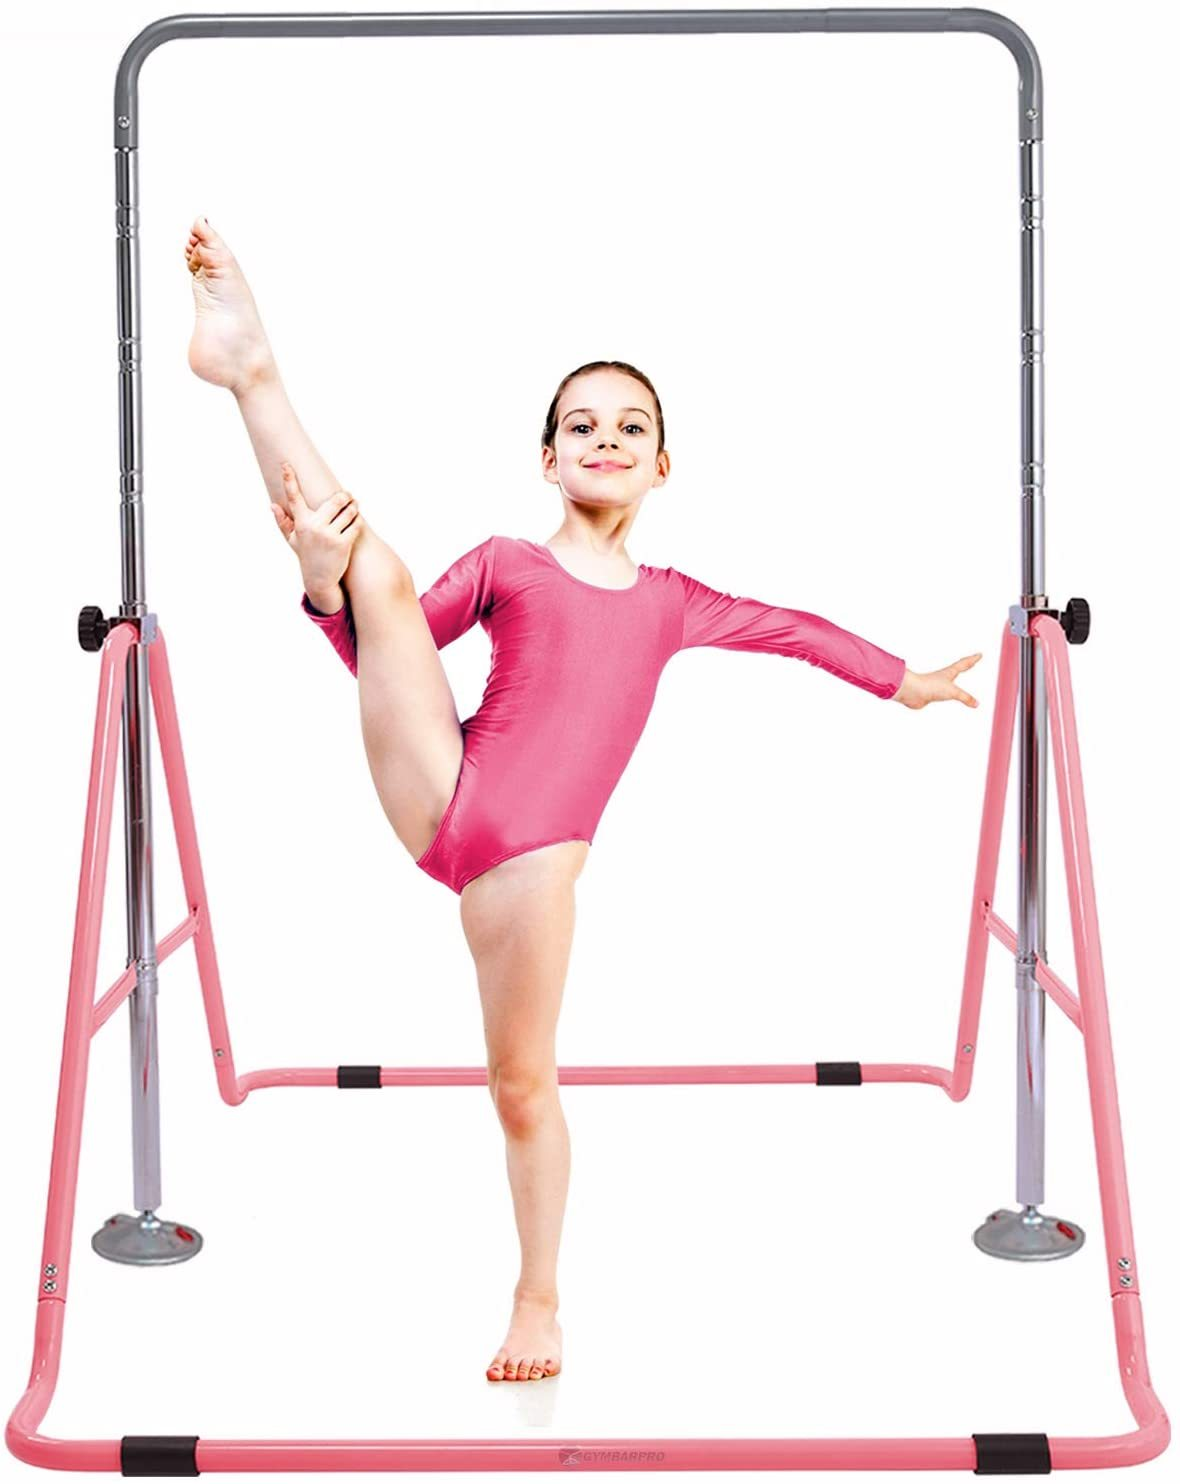 Gymnastics Training Bar for Kids Expandable Adjustable Height Folding Horizontal Bar for Home